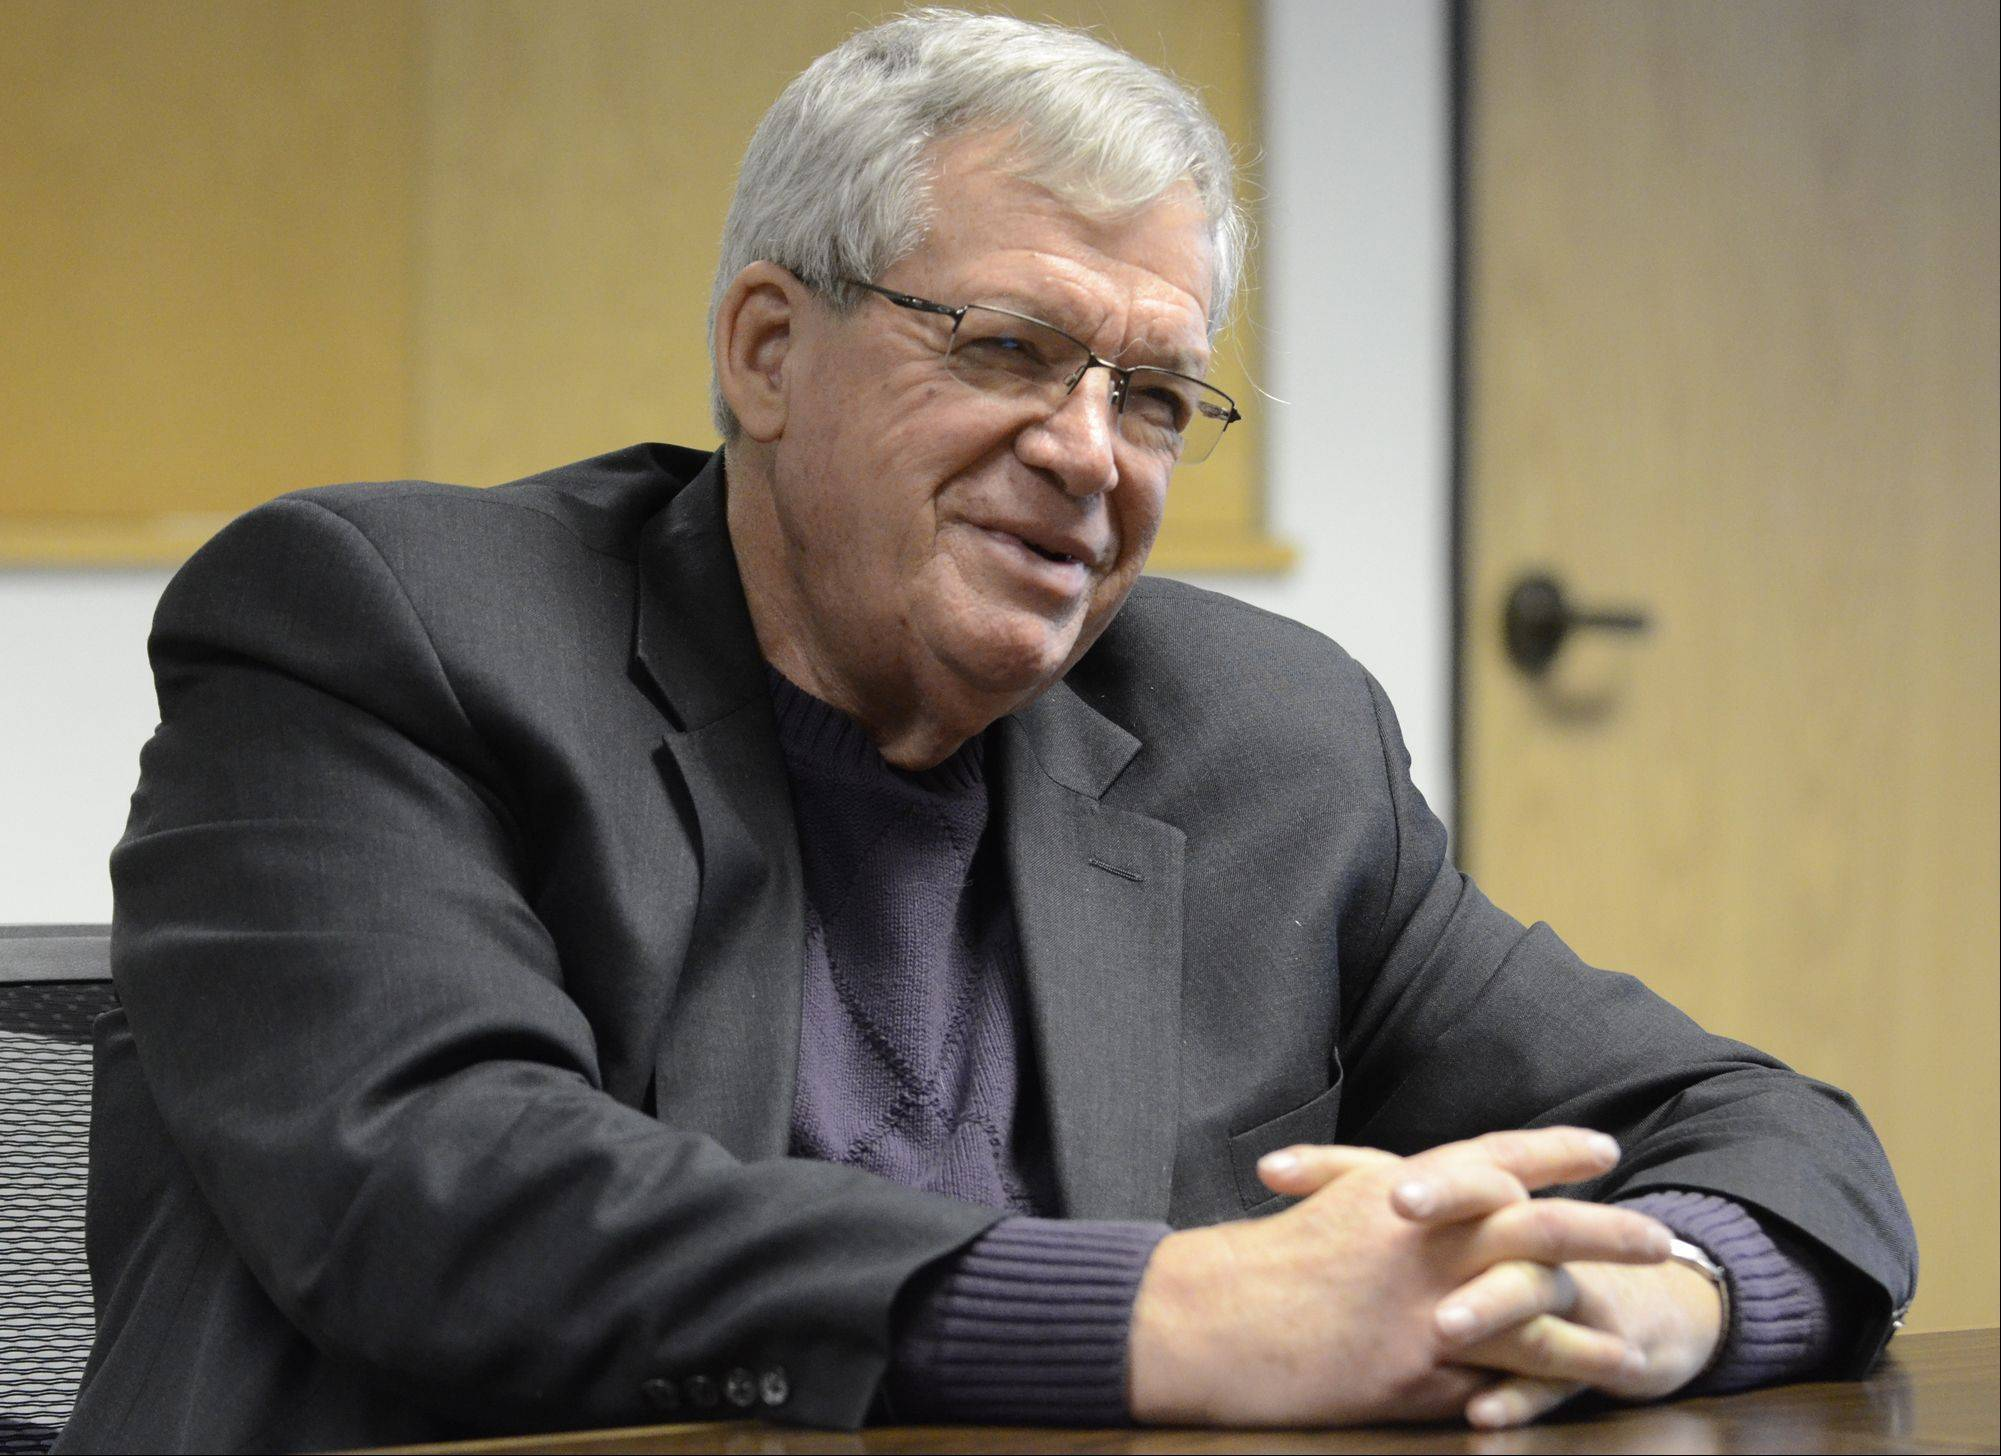 Former speaker of the House Dennis Hastert talks about his work ahead as his government office formally closes at the end of this year.